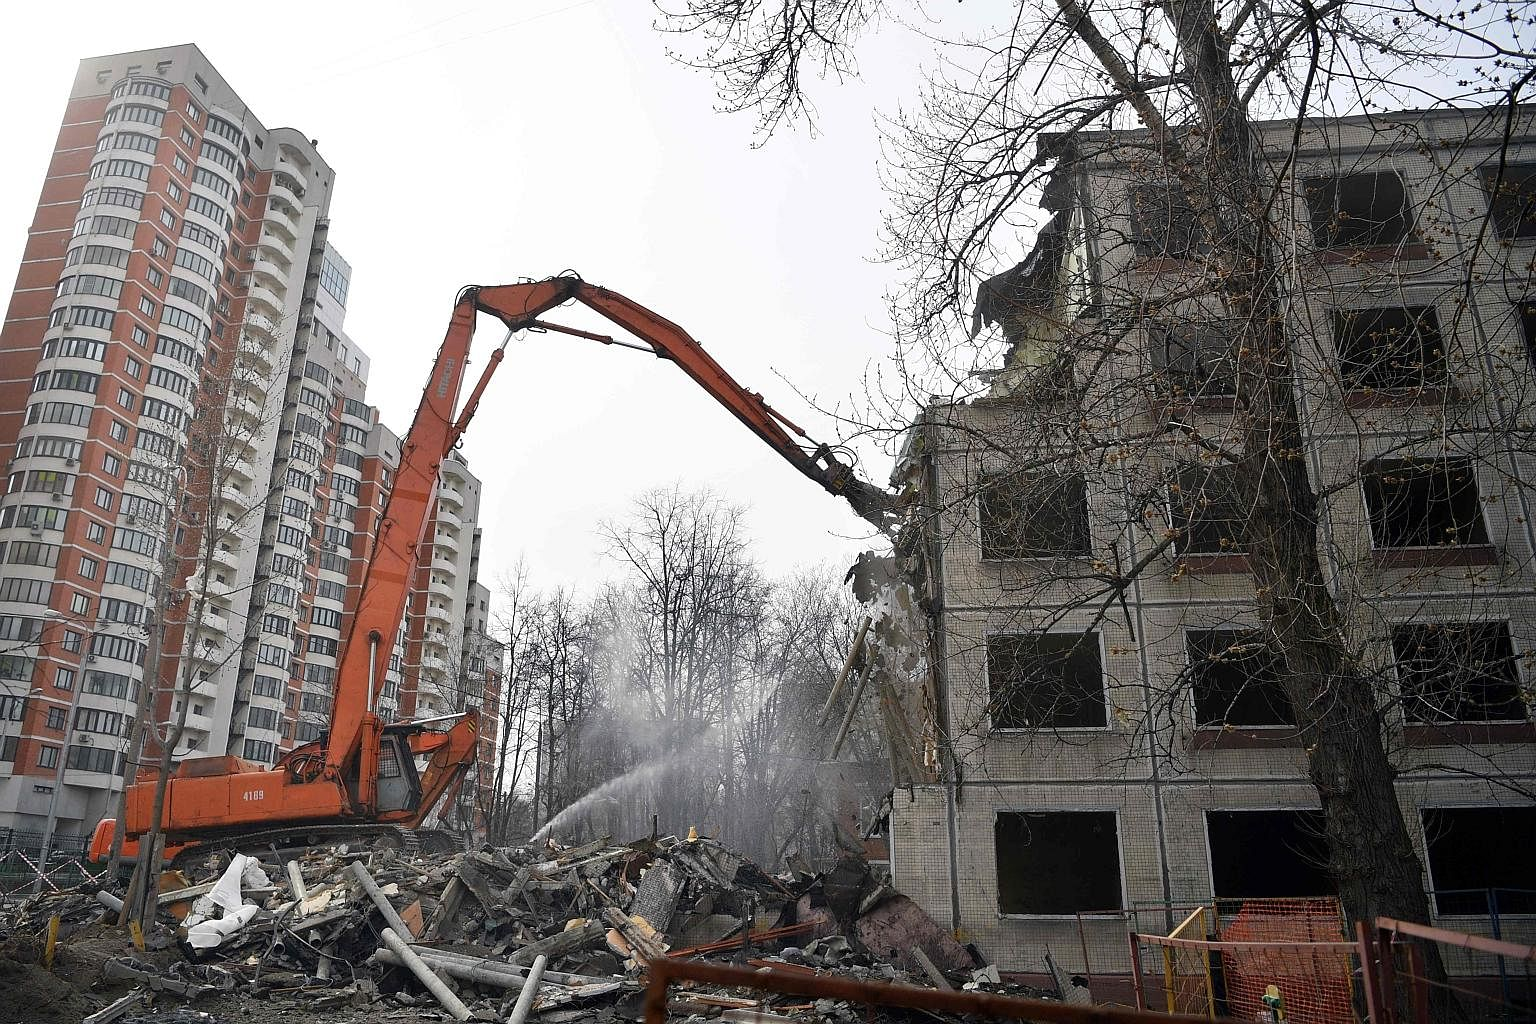 Moscow authorities began to demolish the building Tagansky ATS, despite the protests 04/24/2016 11